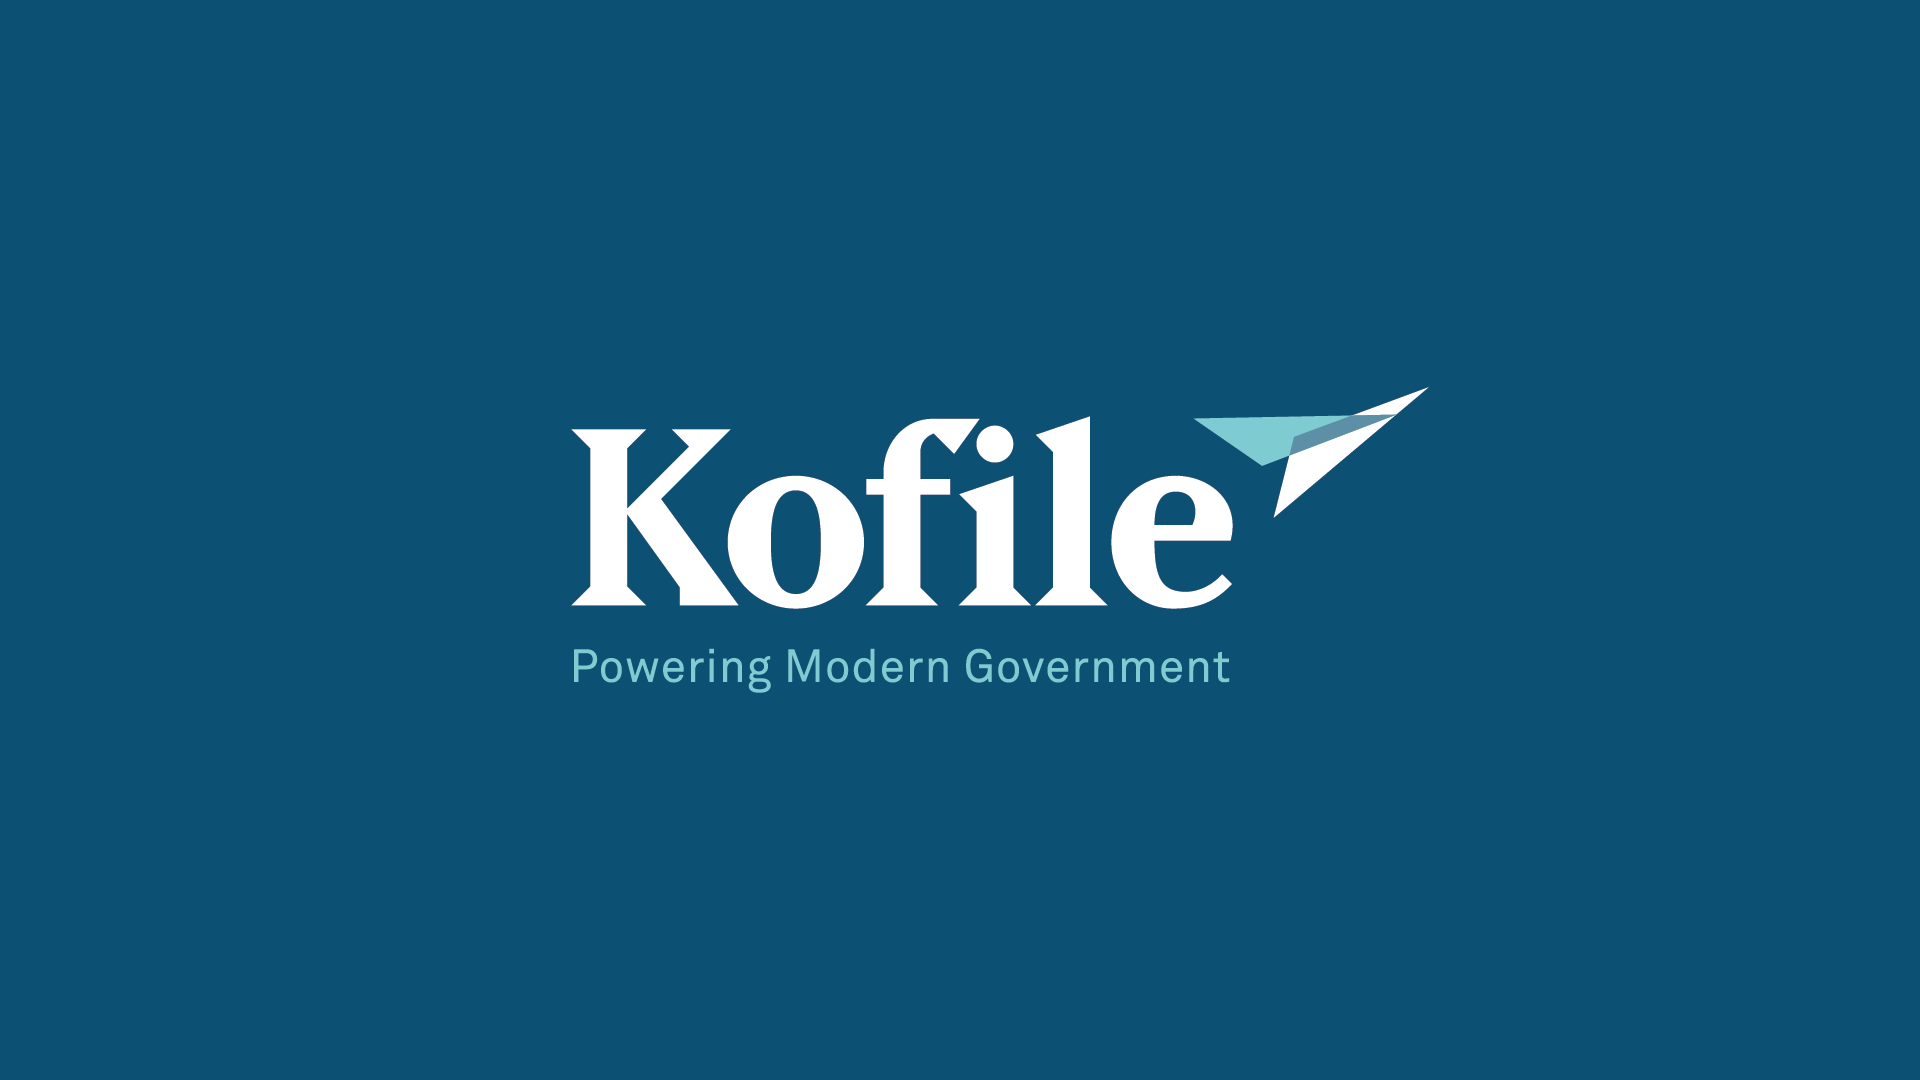 Kofile partners with government agencies nationwide to help them meet their citizens' needs by modernizing information management and access systems